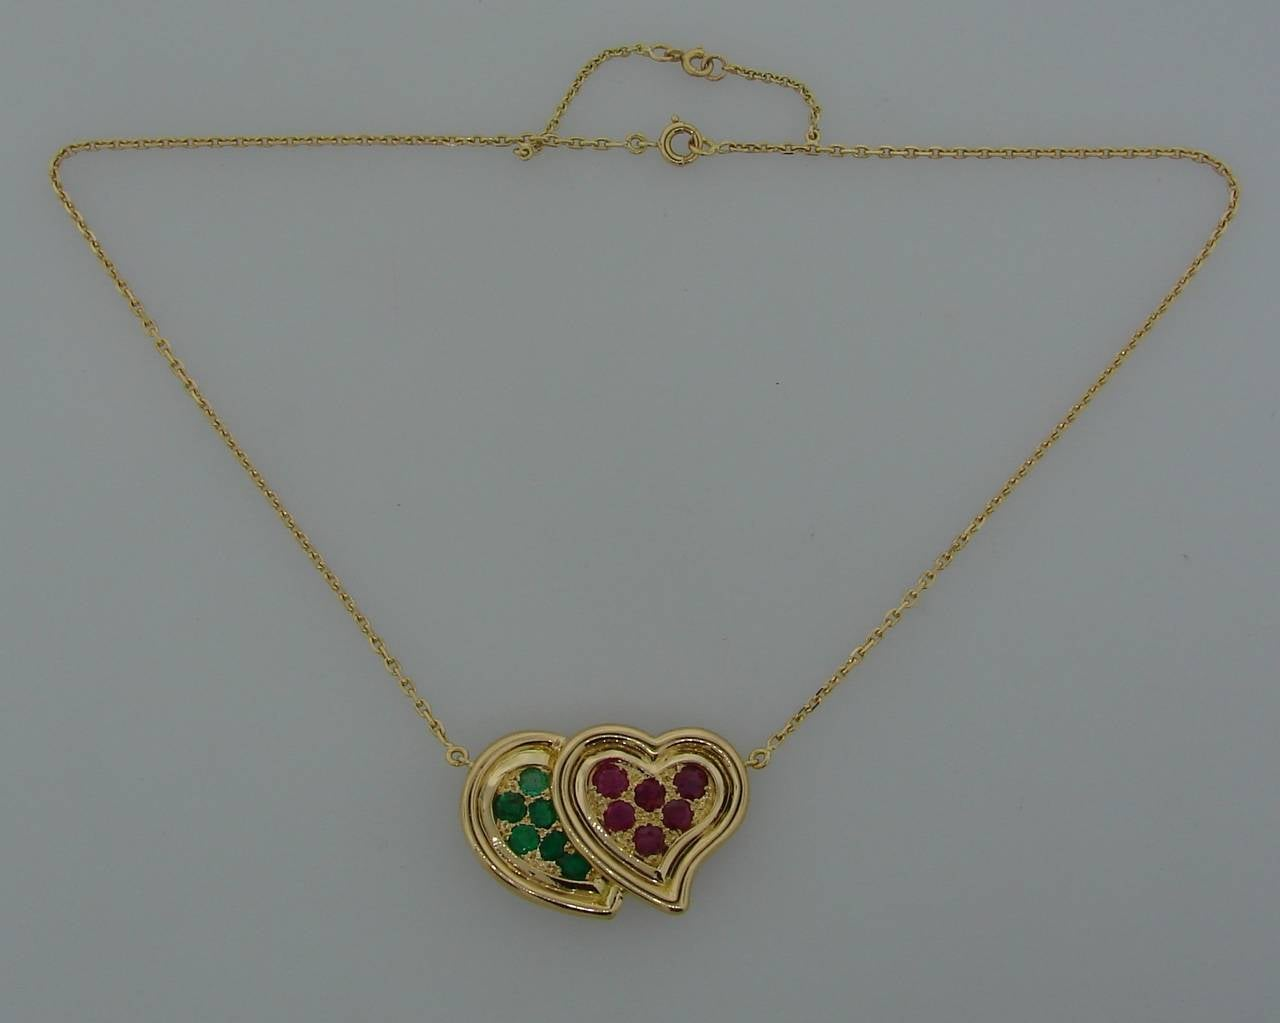 1950s RENE BOIVIN Ruby Emerald Yellow Gold Heart Pendant Necklace 5